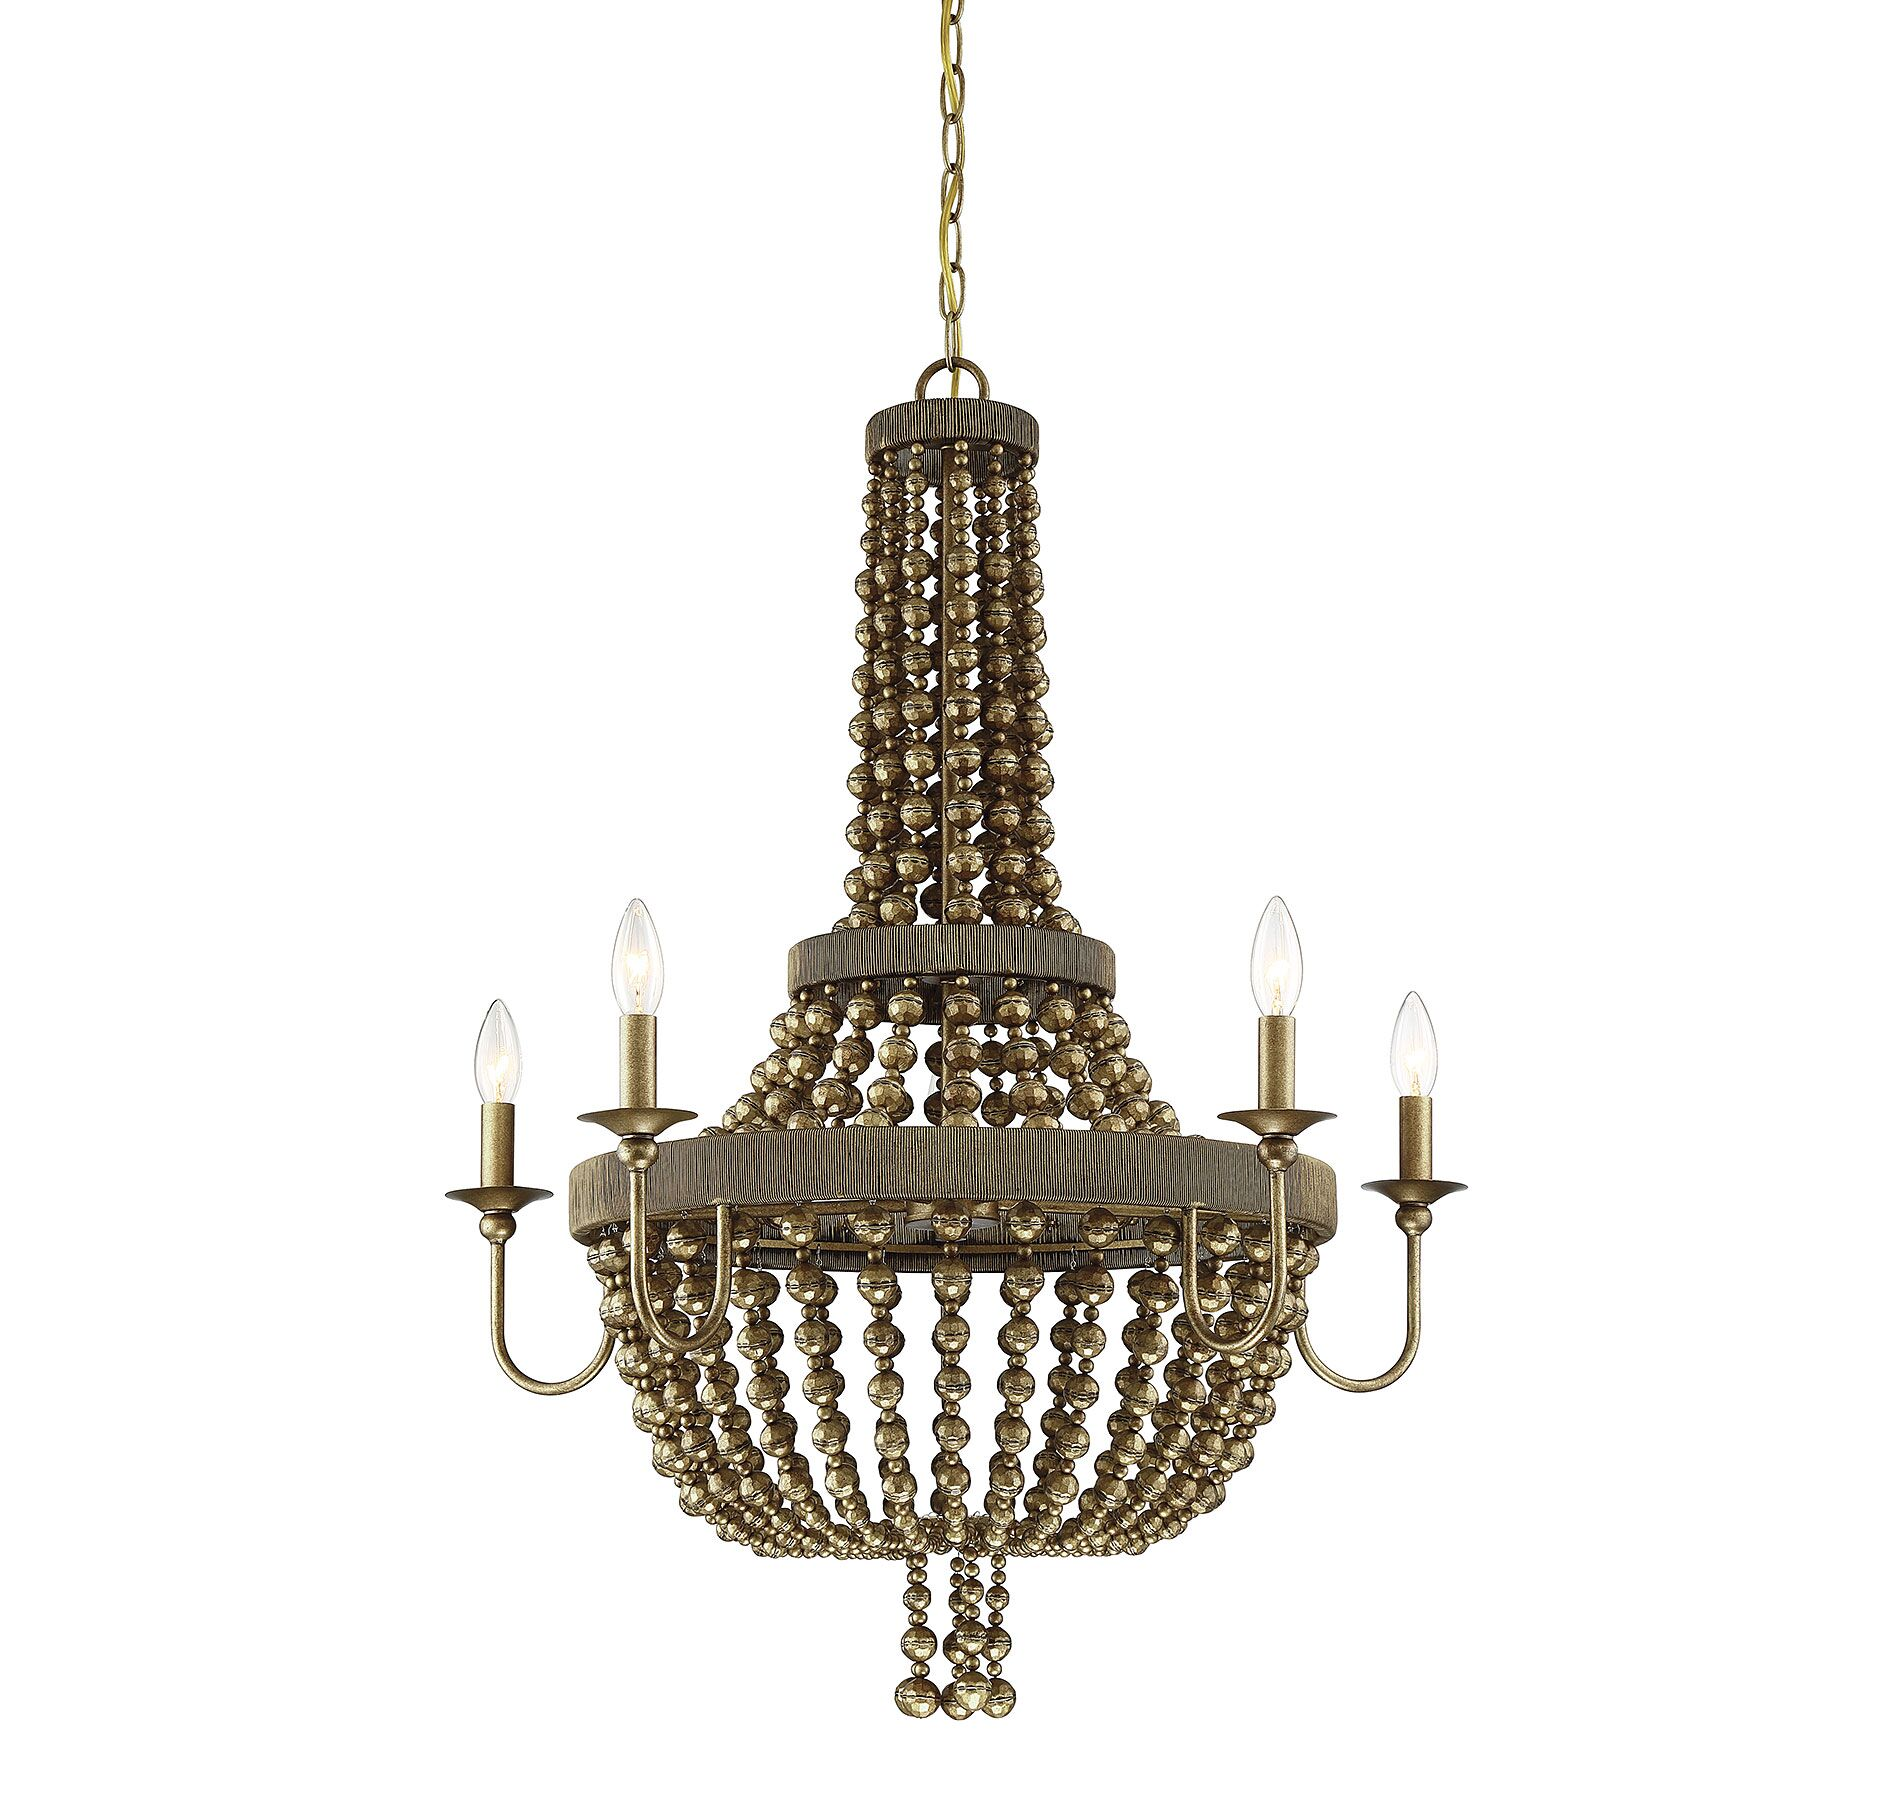 Pericles 5-Light LED Empire Chandelier